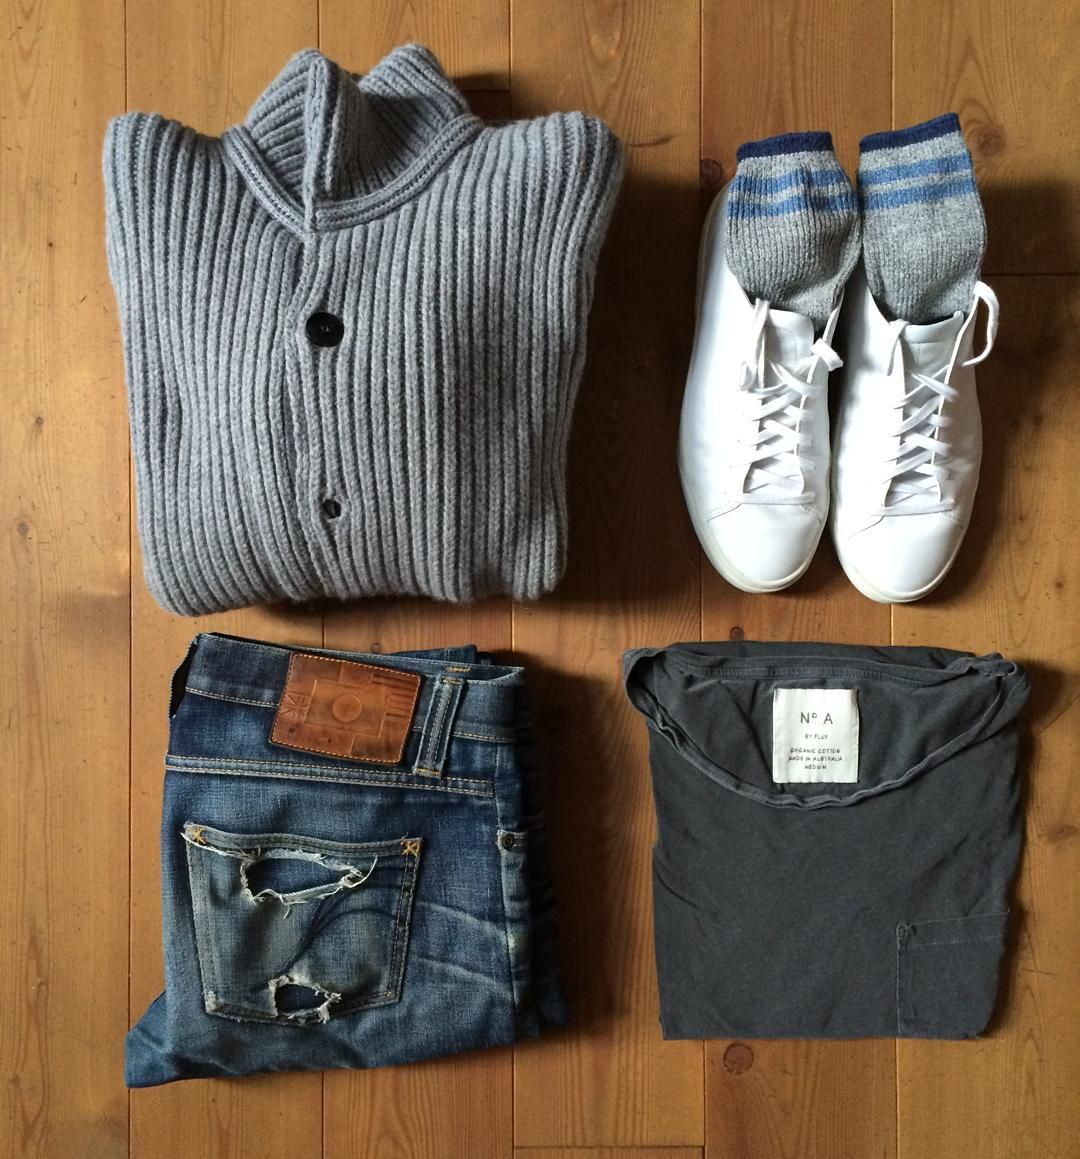 Look of the day: casual #imperialdenim #selfedge #grpknitwear #fluxmelbourne #vorprodukte #ues